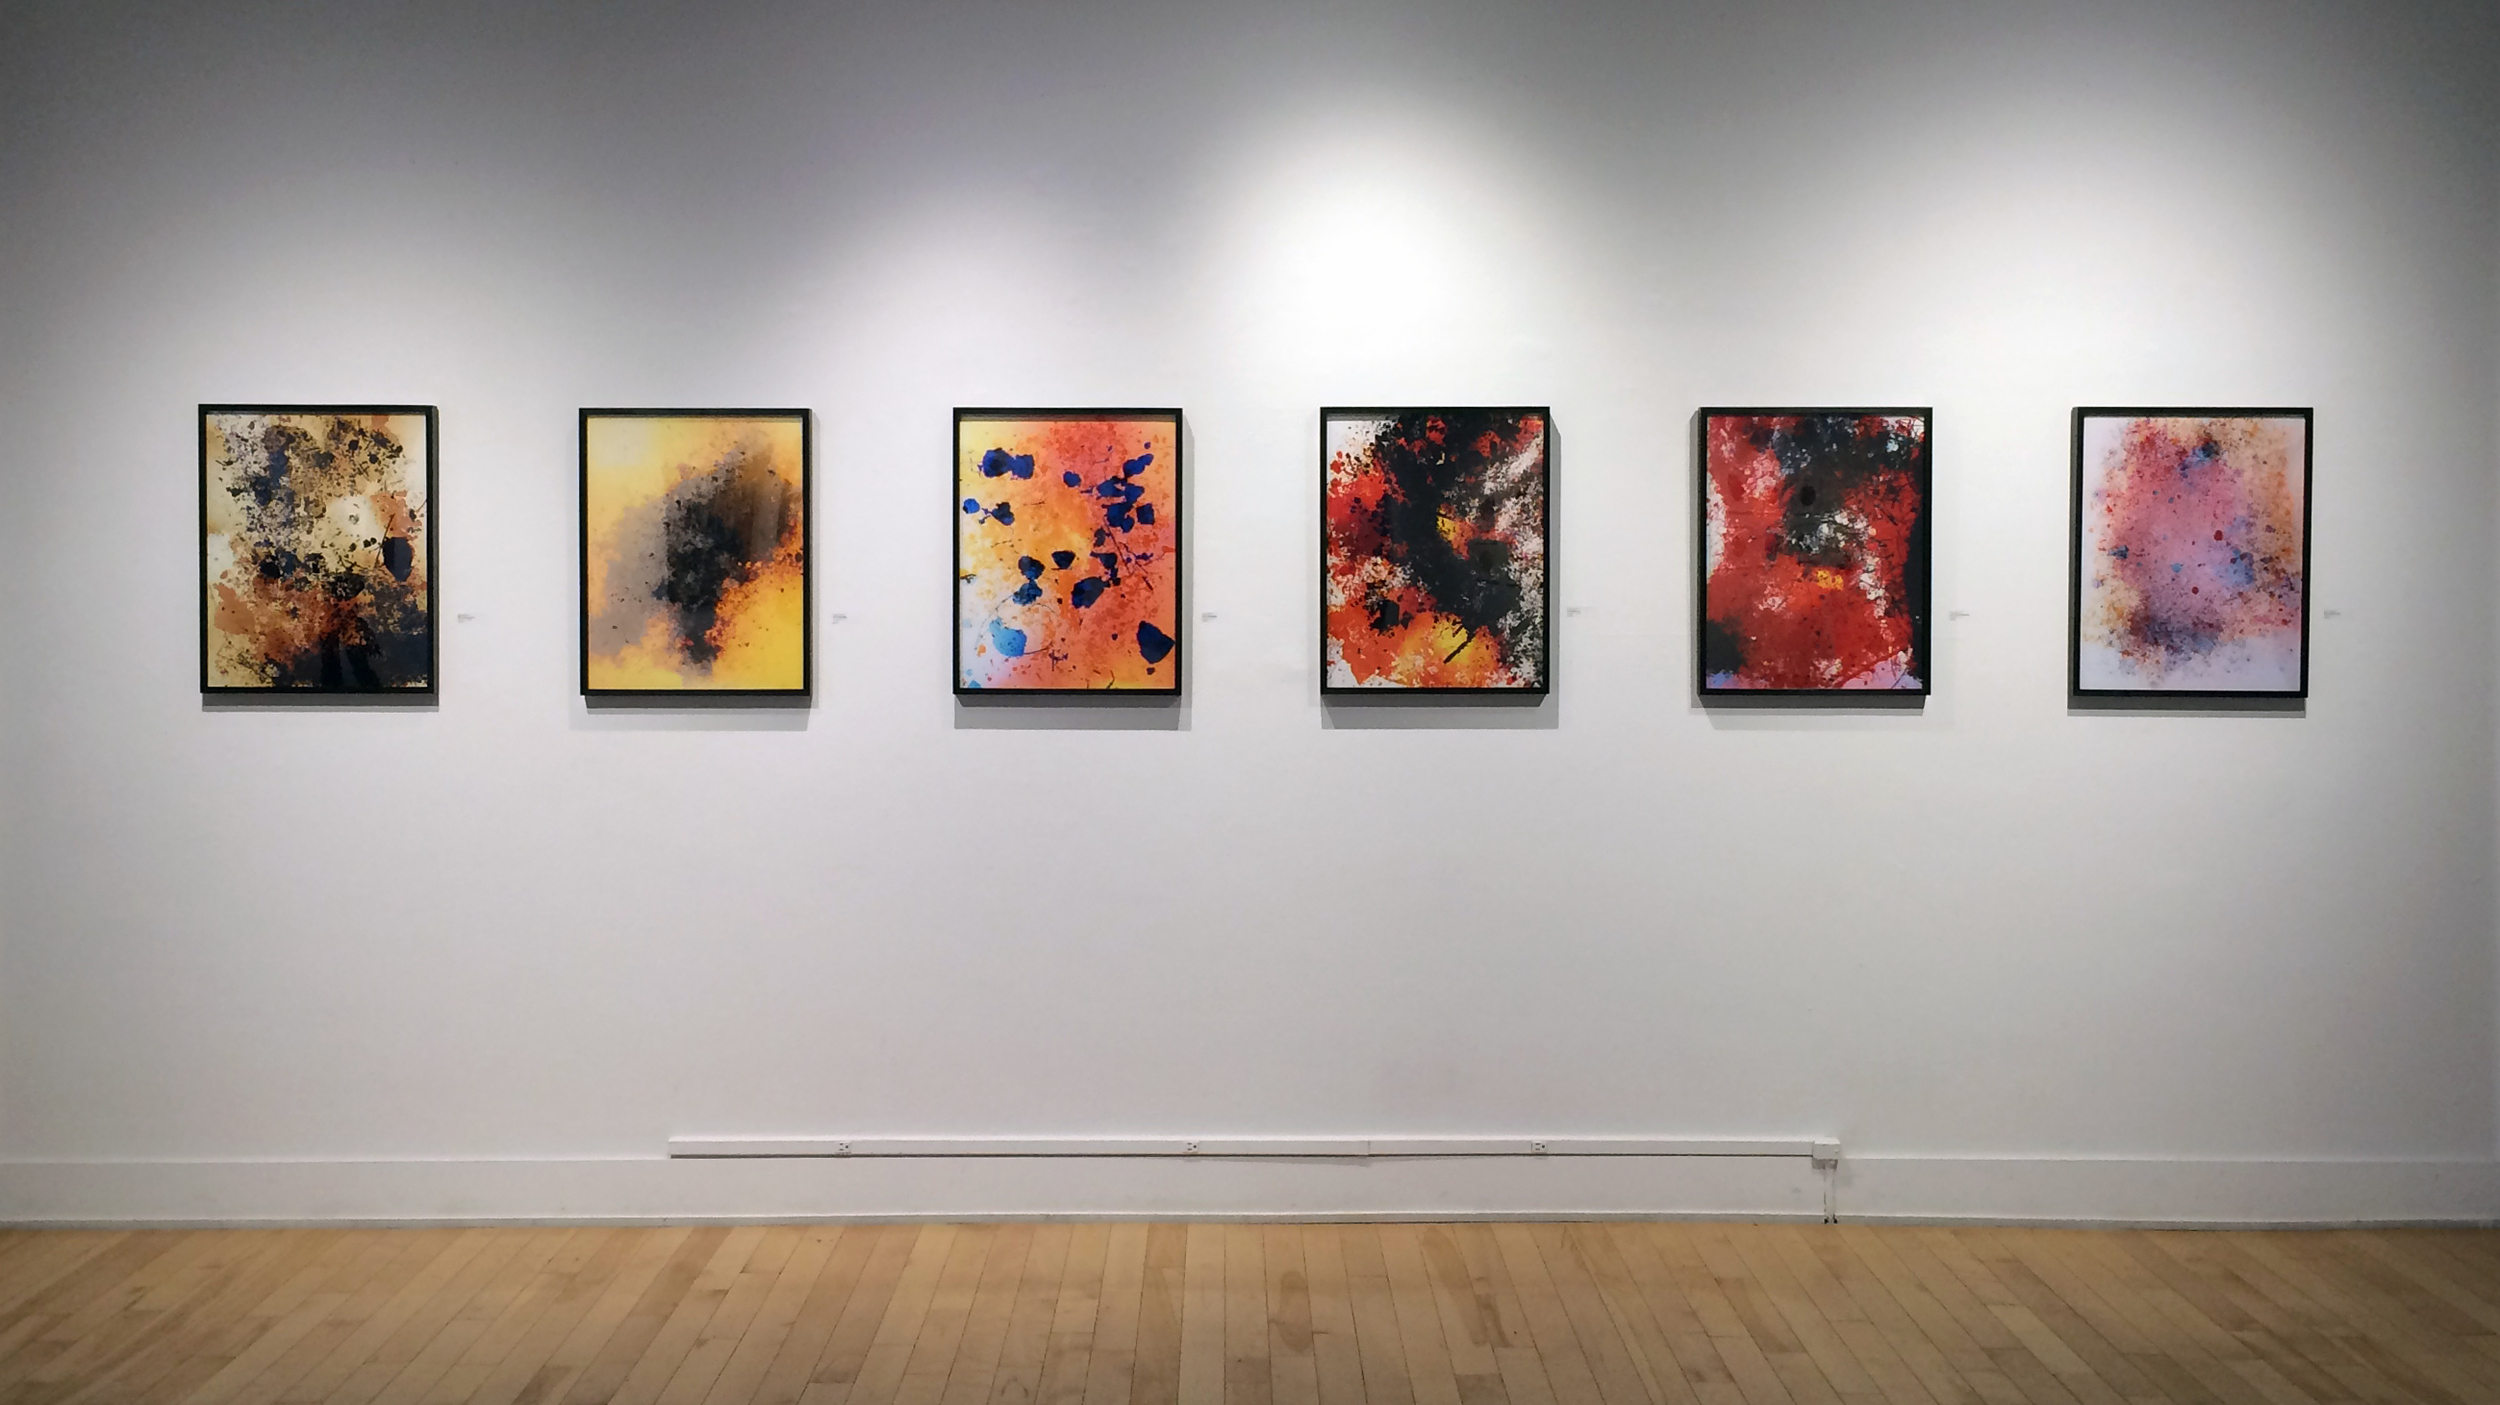 """The """"Dirt"""" Series.  Opening Reception: Friday, May 22nd 6:30-9:00pm On View: May 7th – July 11th, 2015   Meditative Surfaces  is a group exhibition of contemporary abstract imagery. The show highlights the work of two painters, Charles Gniech & Rebecca Moy; a mixed media artist, Deanna Kruger; two photographers, Maggie Meiners & Doug Fogelson; and sculptor Josh Garber.  http://www.theartcenterhp.org/exhibits/current-exhibits"""